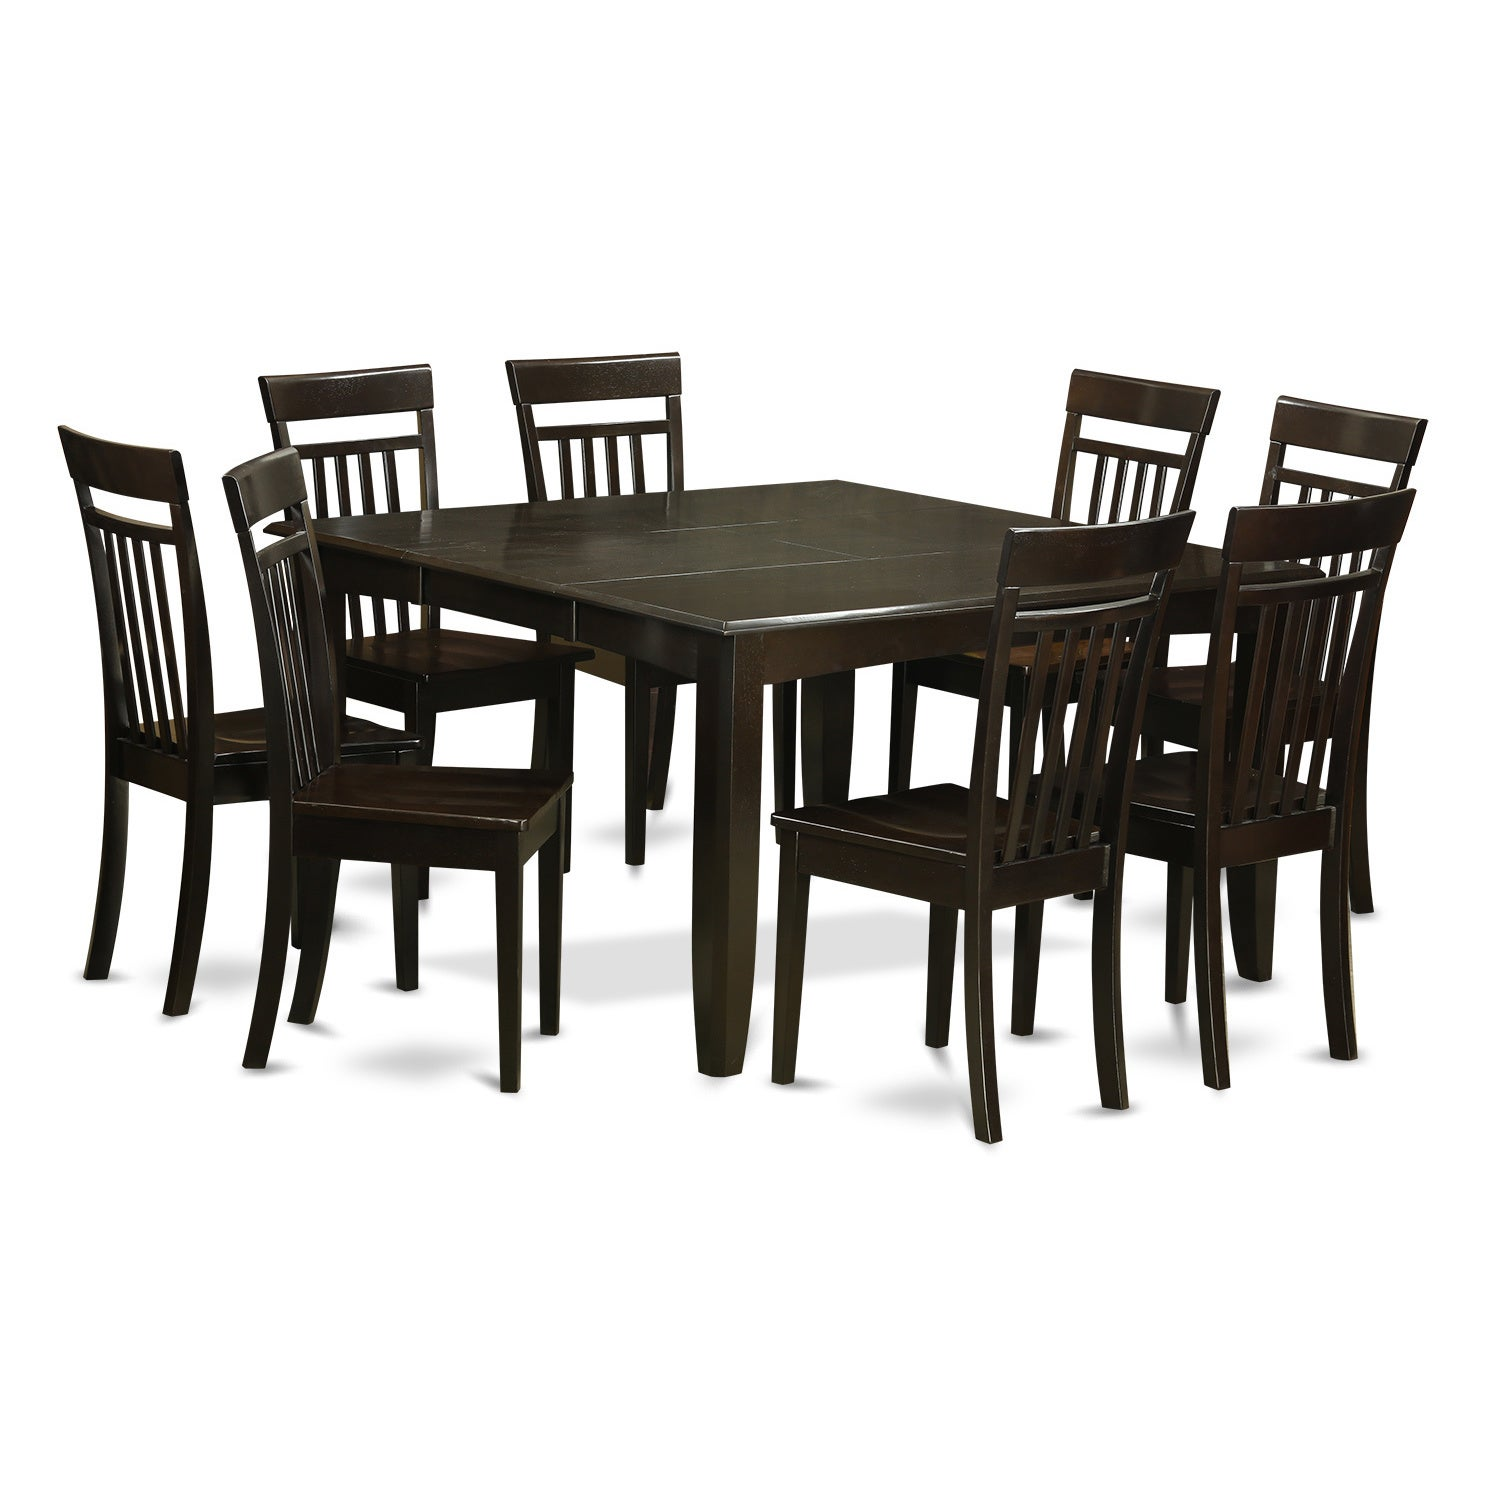 Shop 9 piece cappuccino brown rubberwood dining room set free shipping today overstock com 11967736